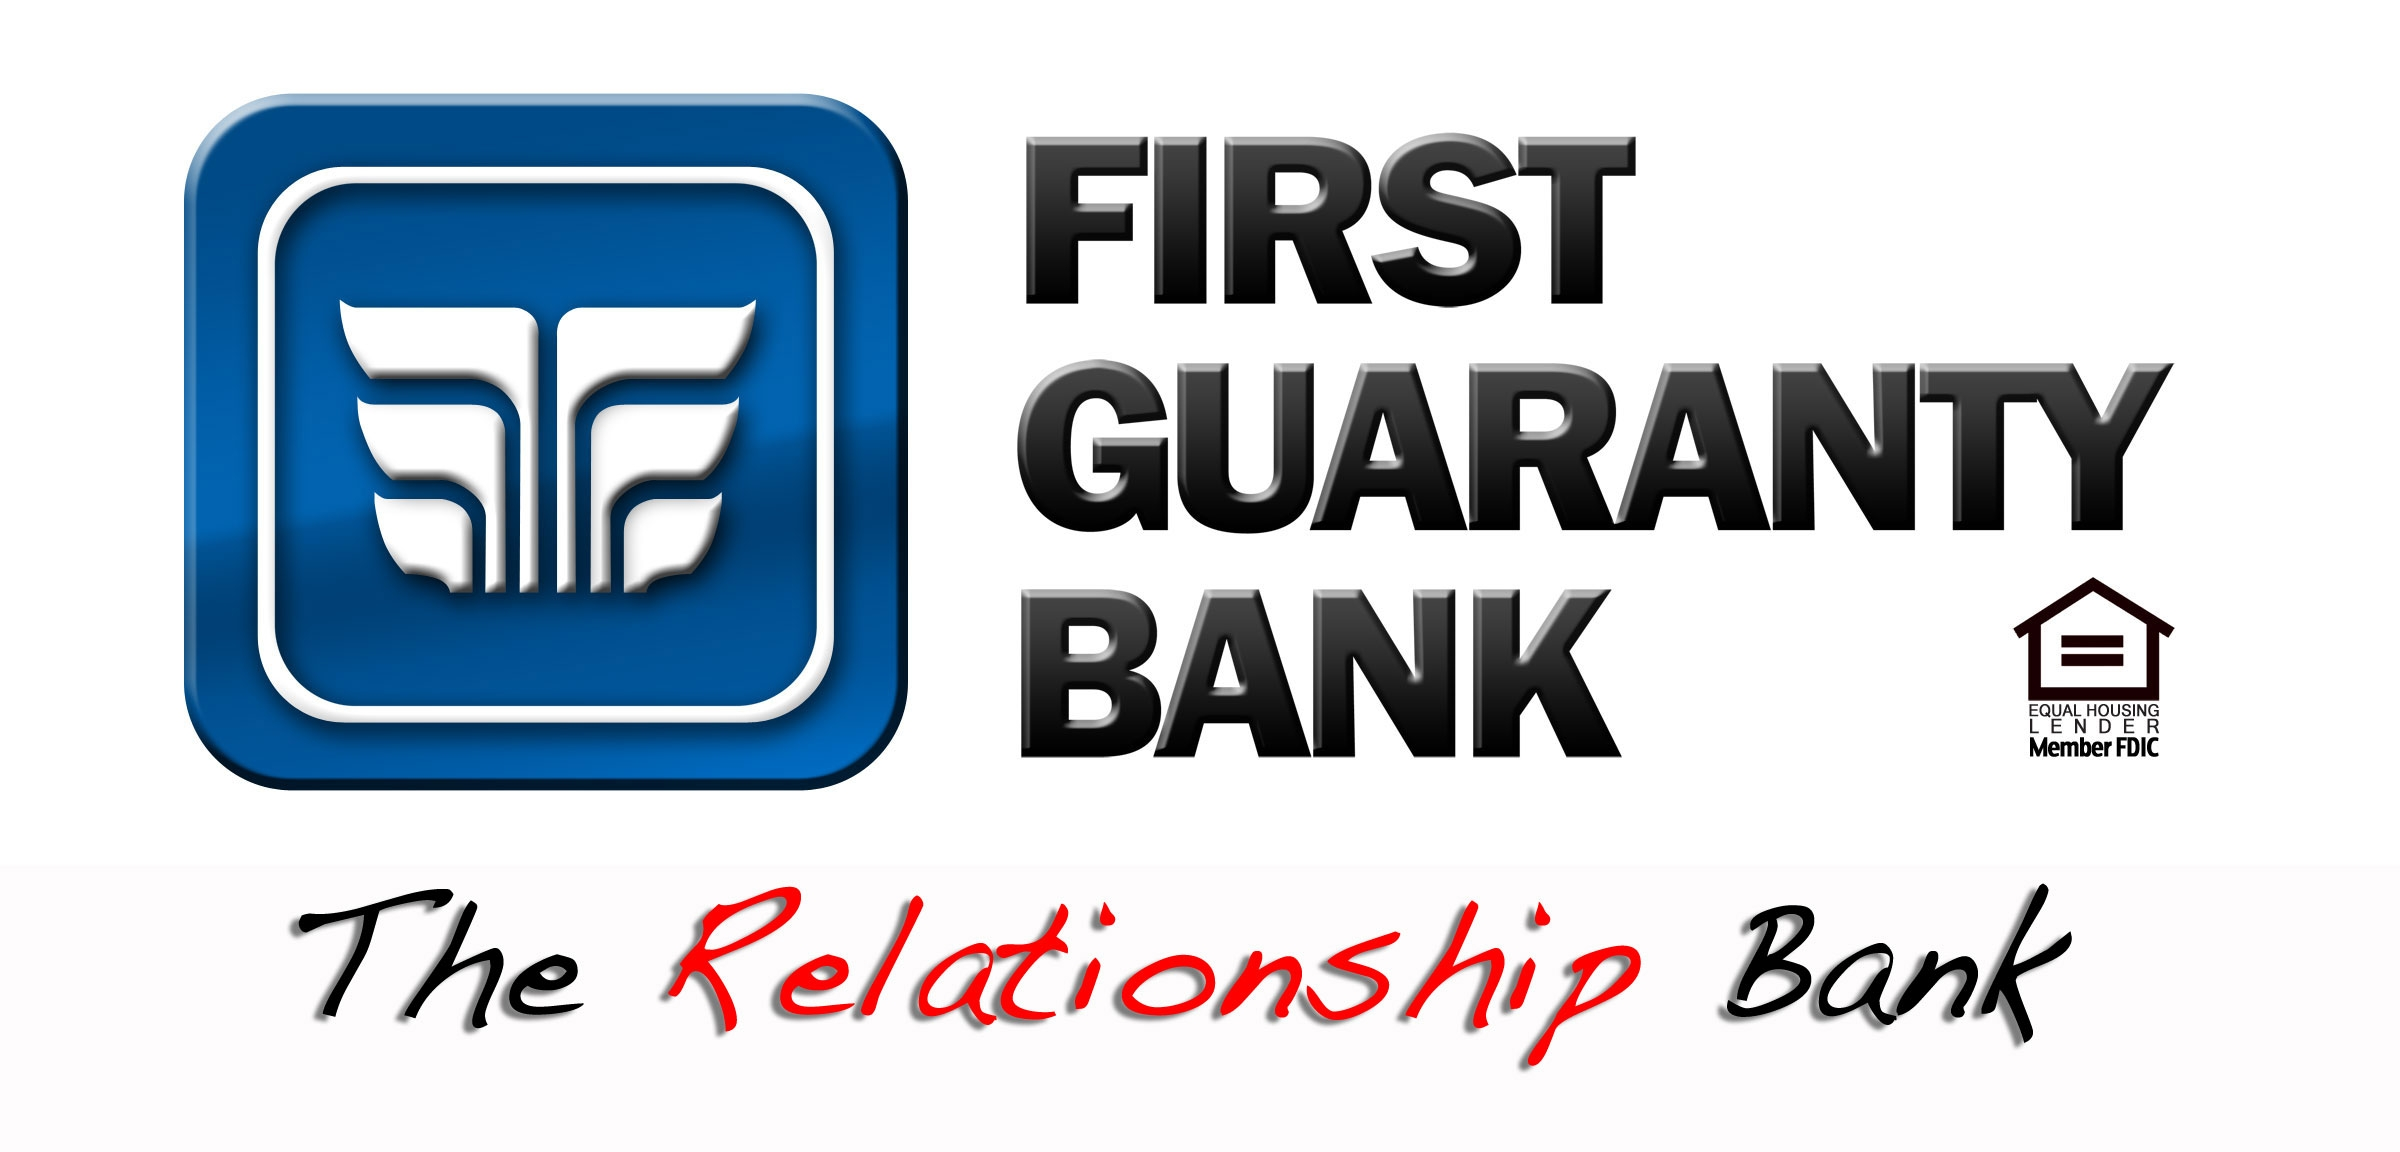 First Garaunty Bank Logo